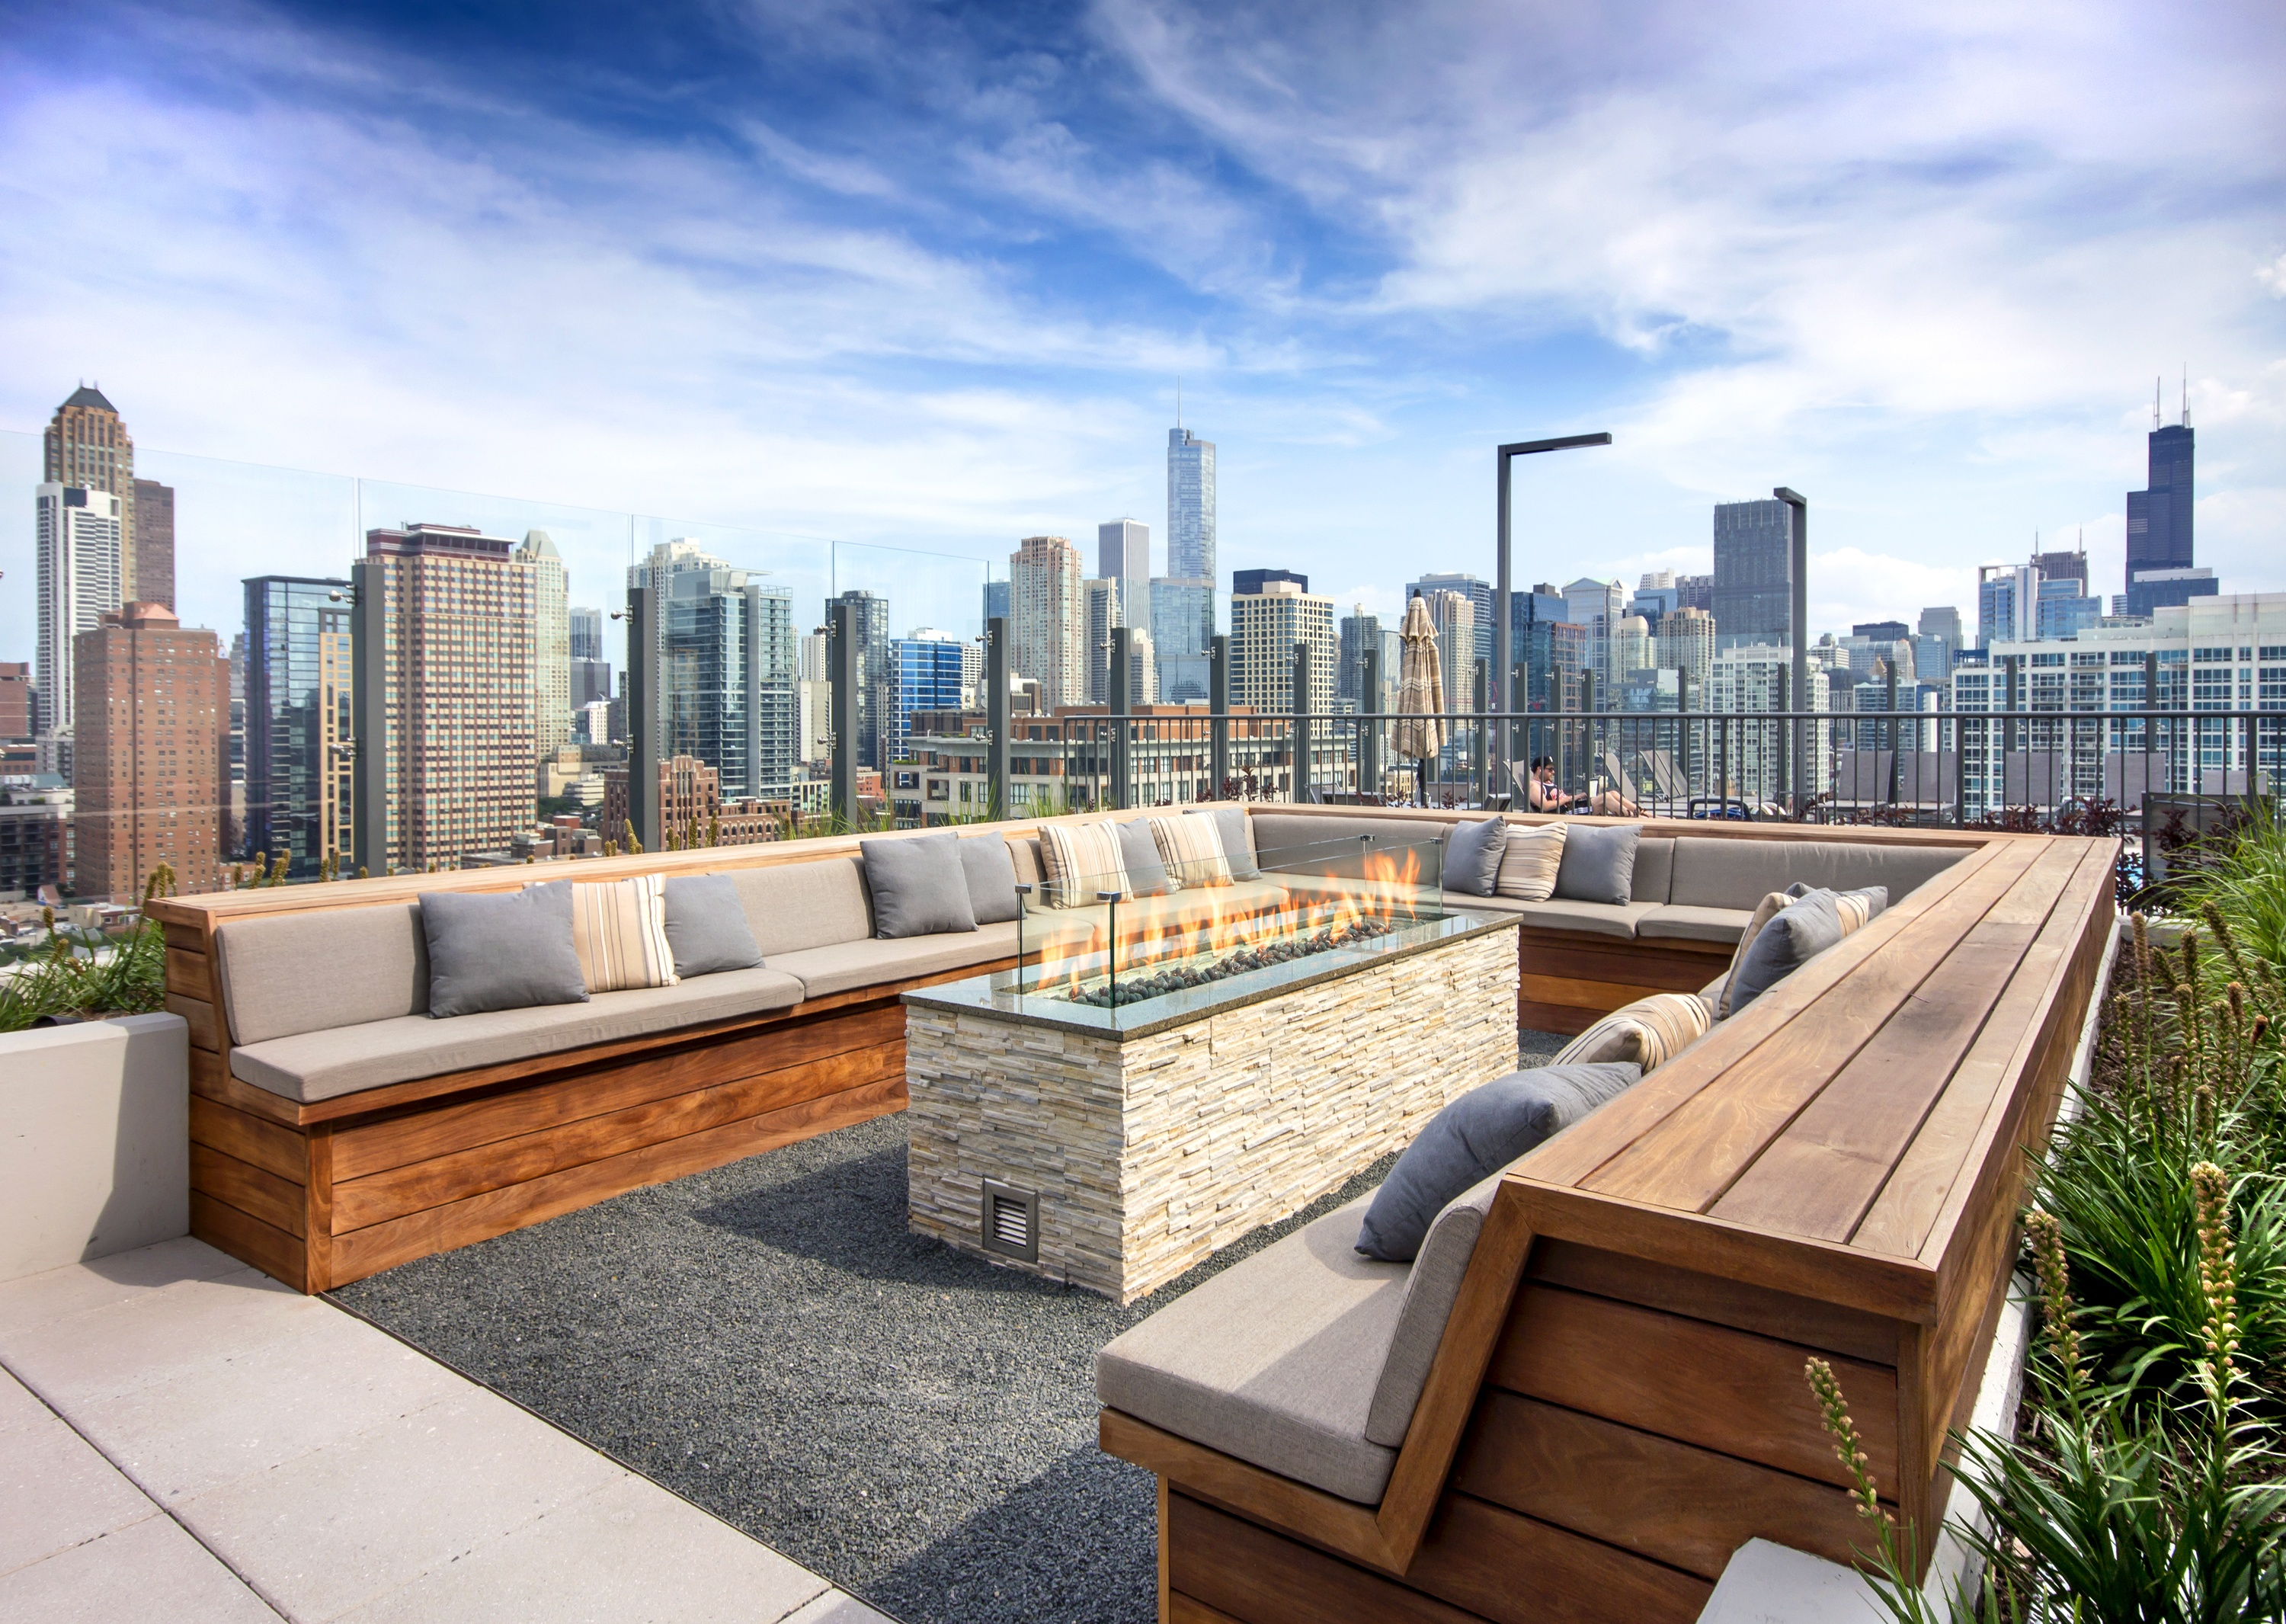 Three Ways to Keep Aging Millennials Interested in Multifamily